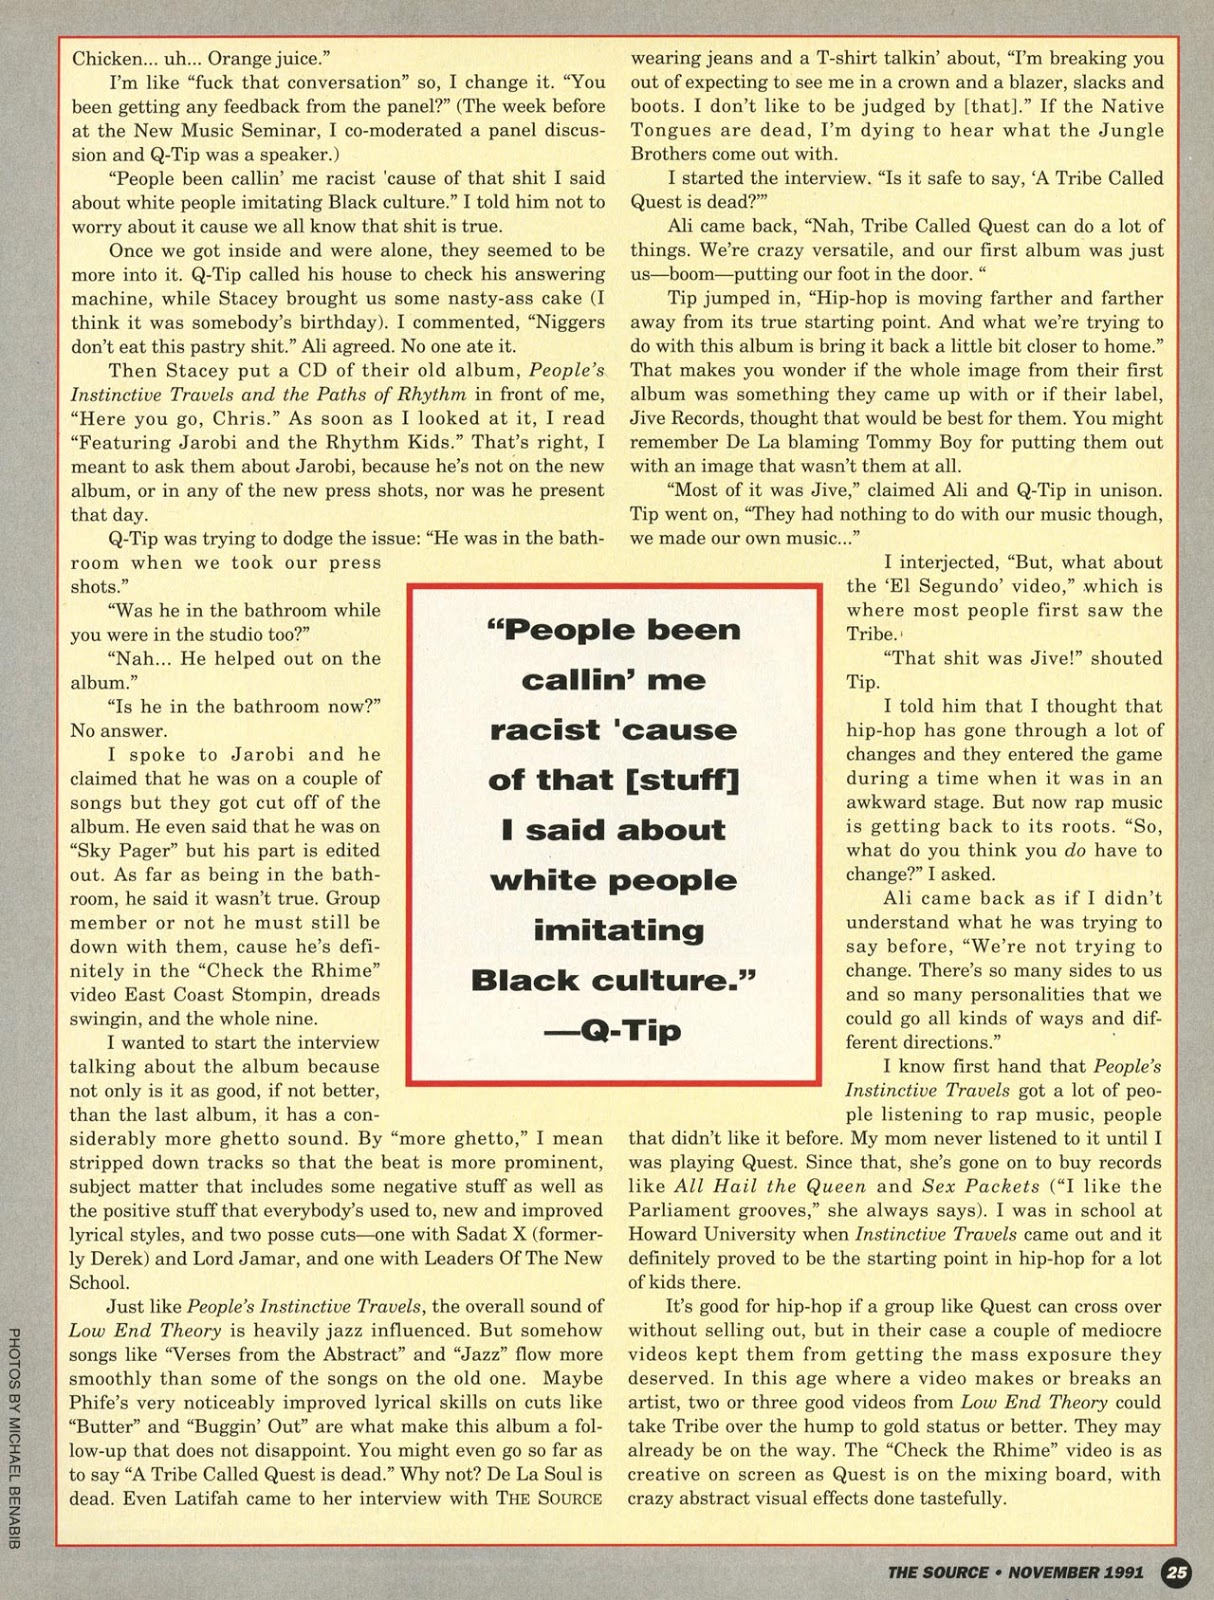 A Tribe Called Quest Interview (The Source, Nov. 19991) Page 2